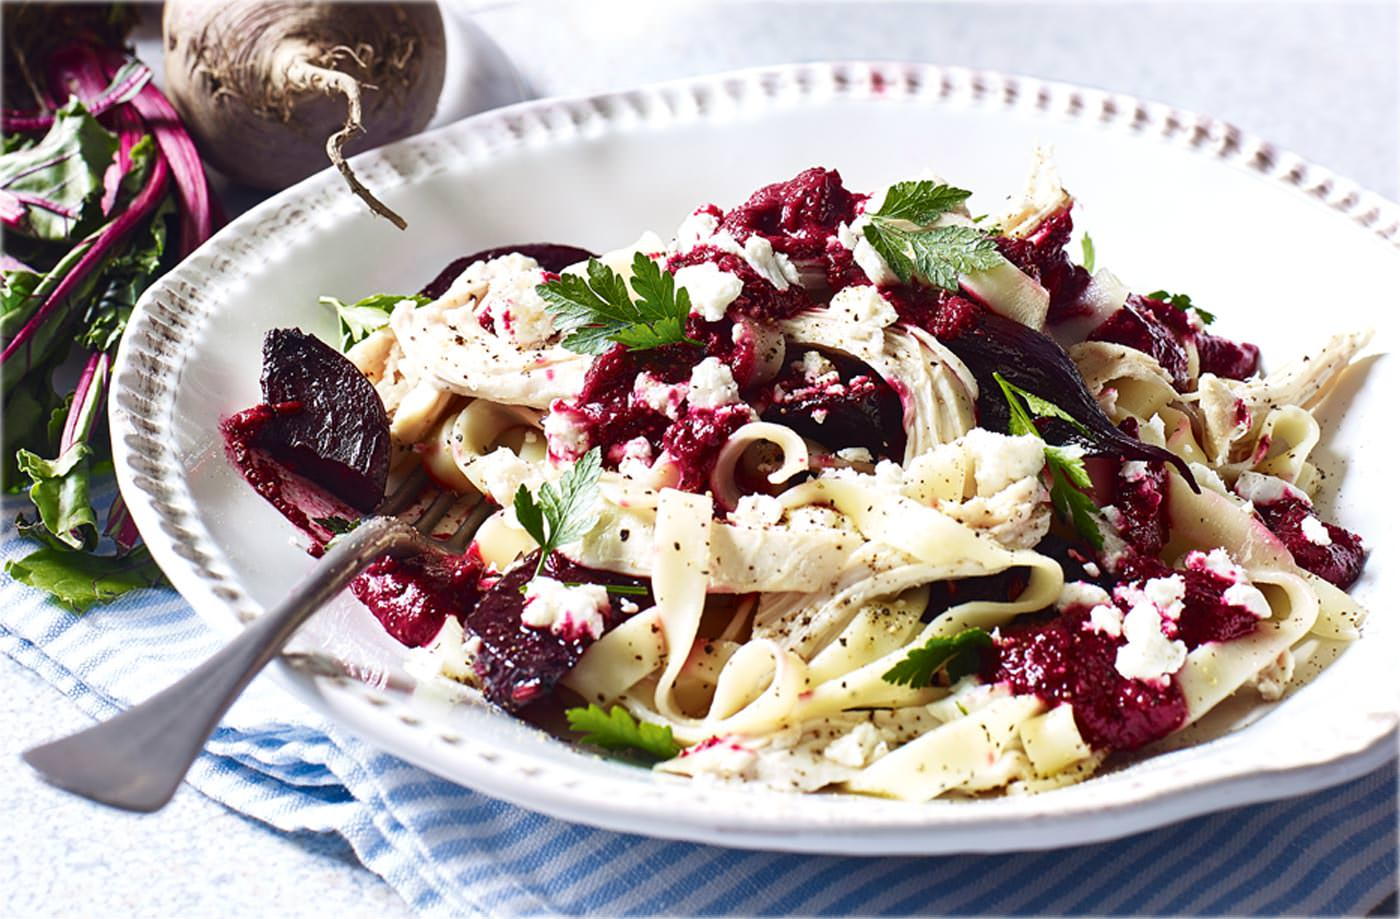 Chicken and beetroot 'pesto' pasta recipe